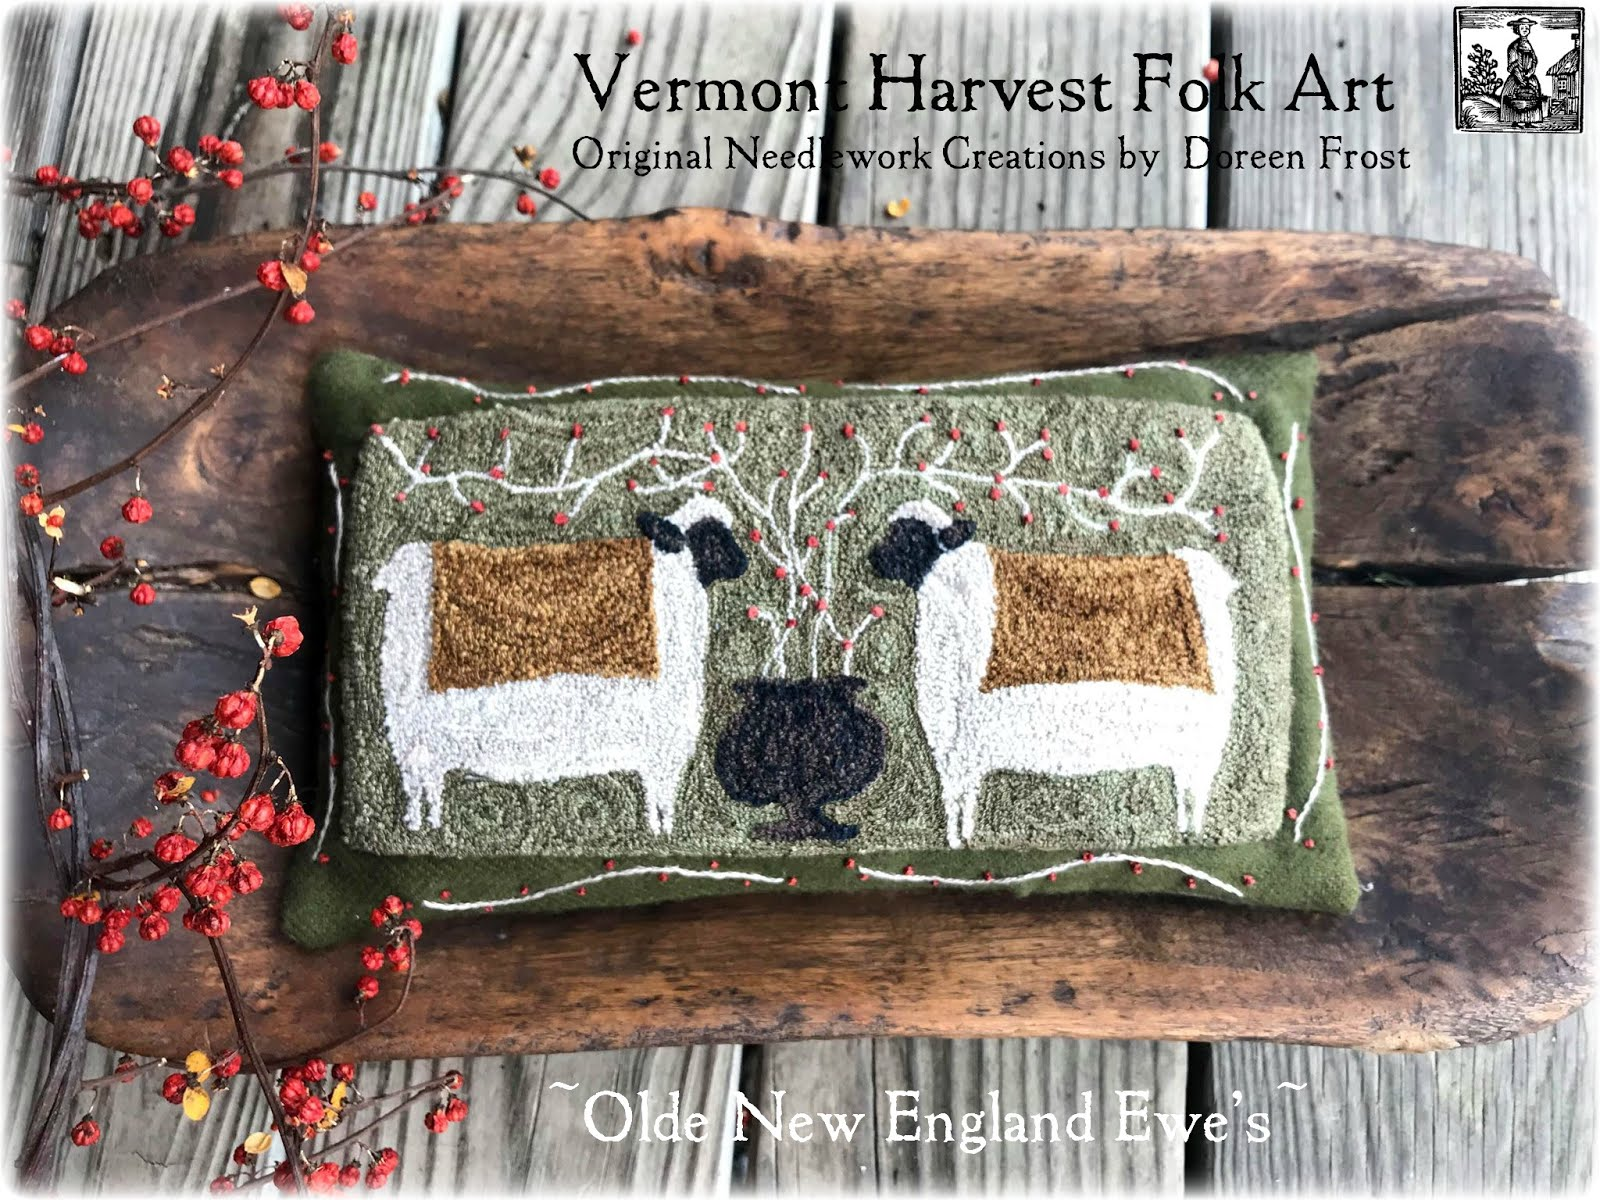 ~Olde New England Ewes~